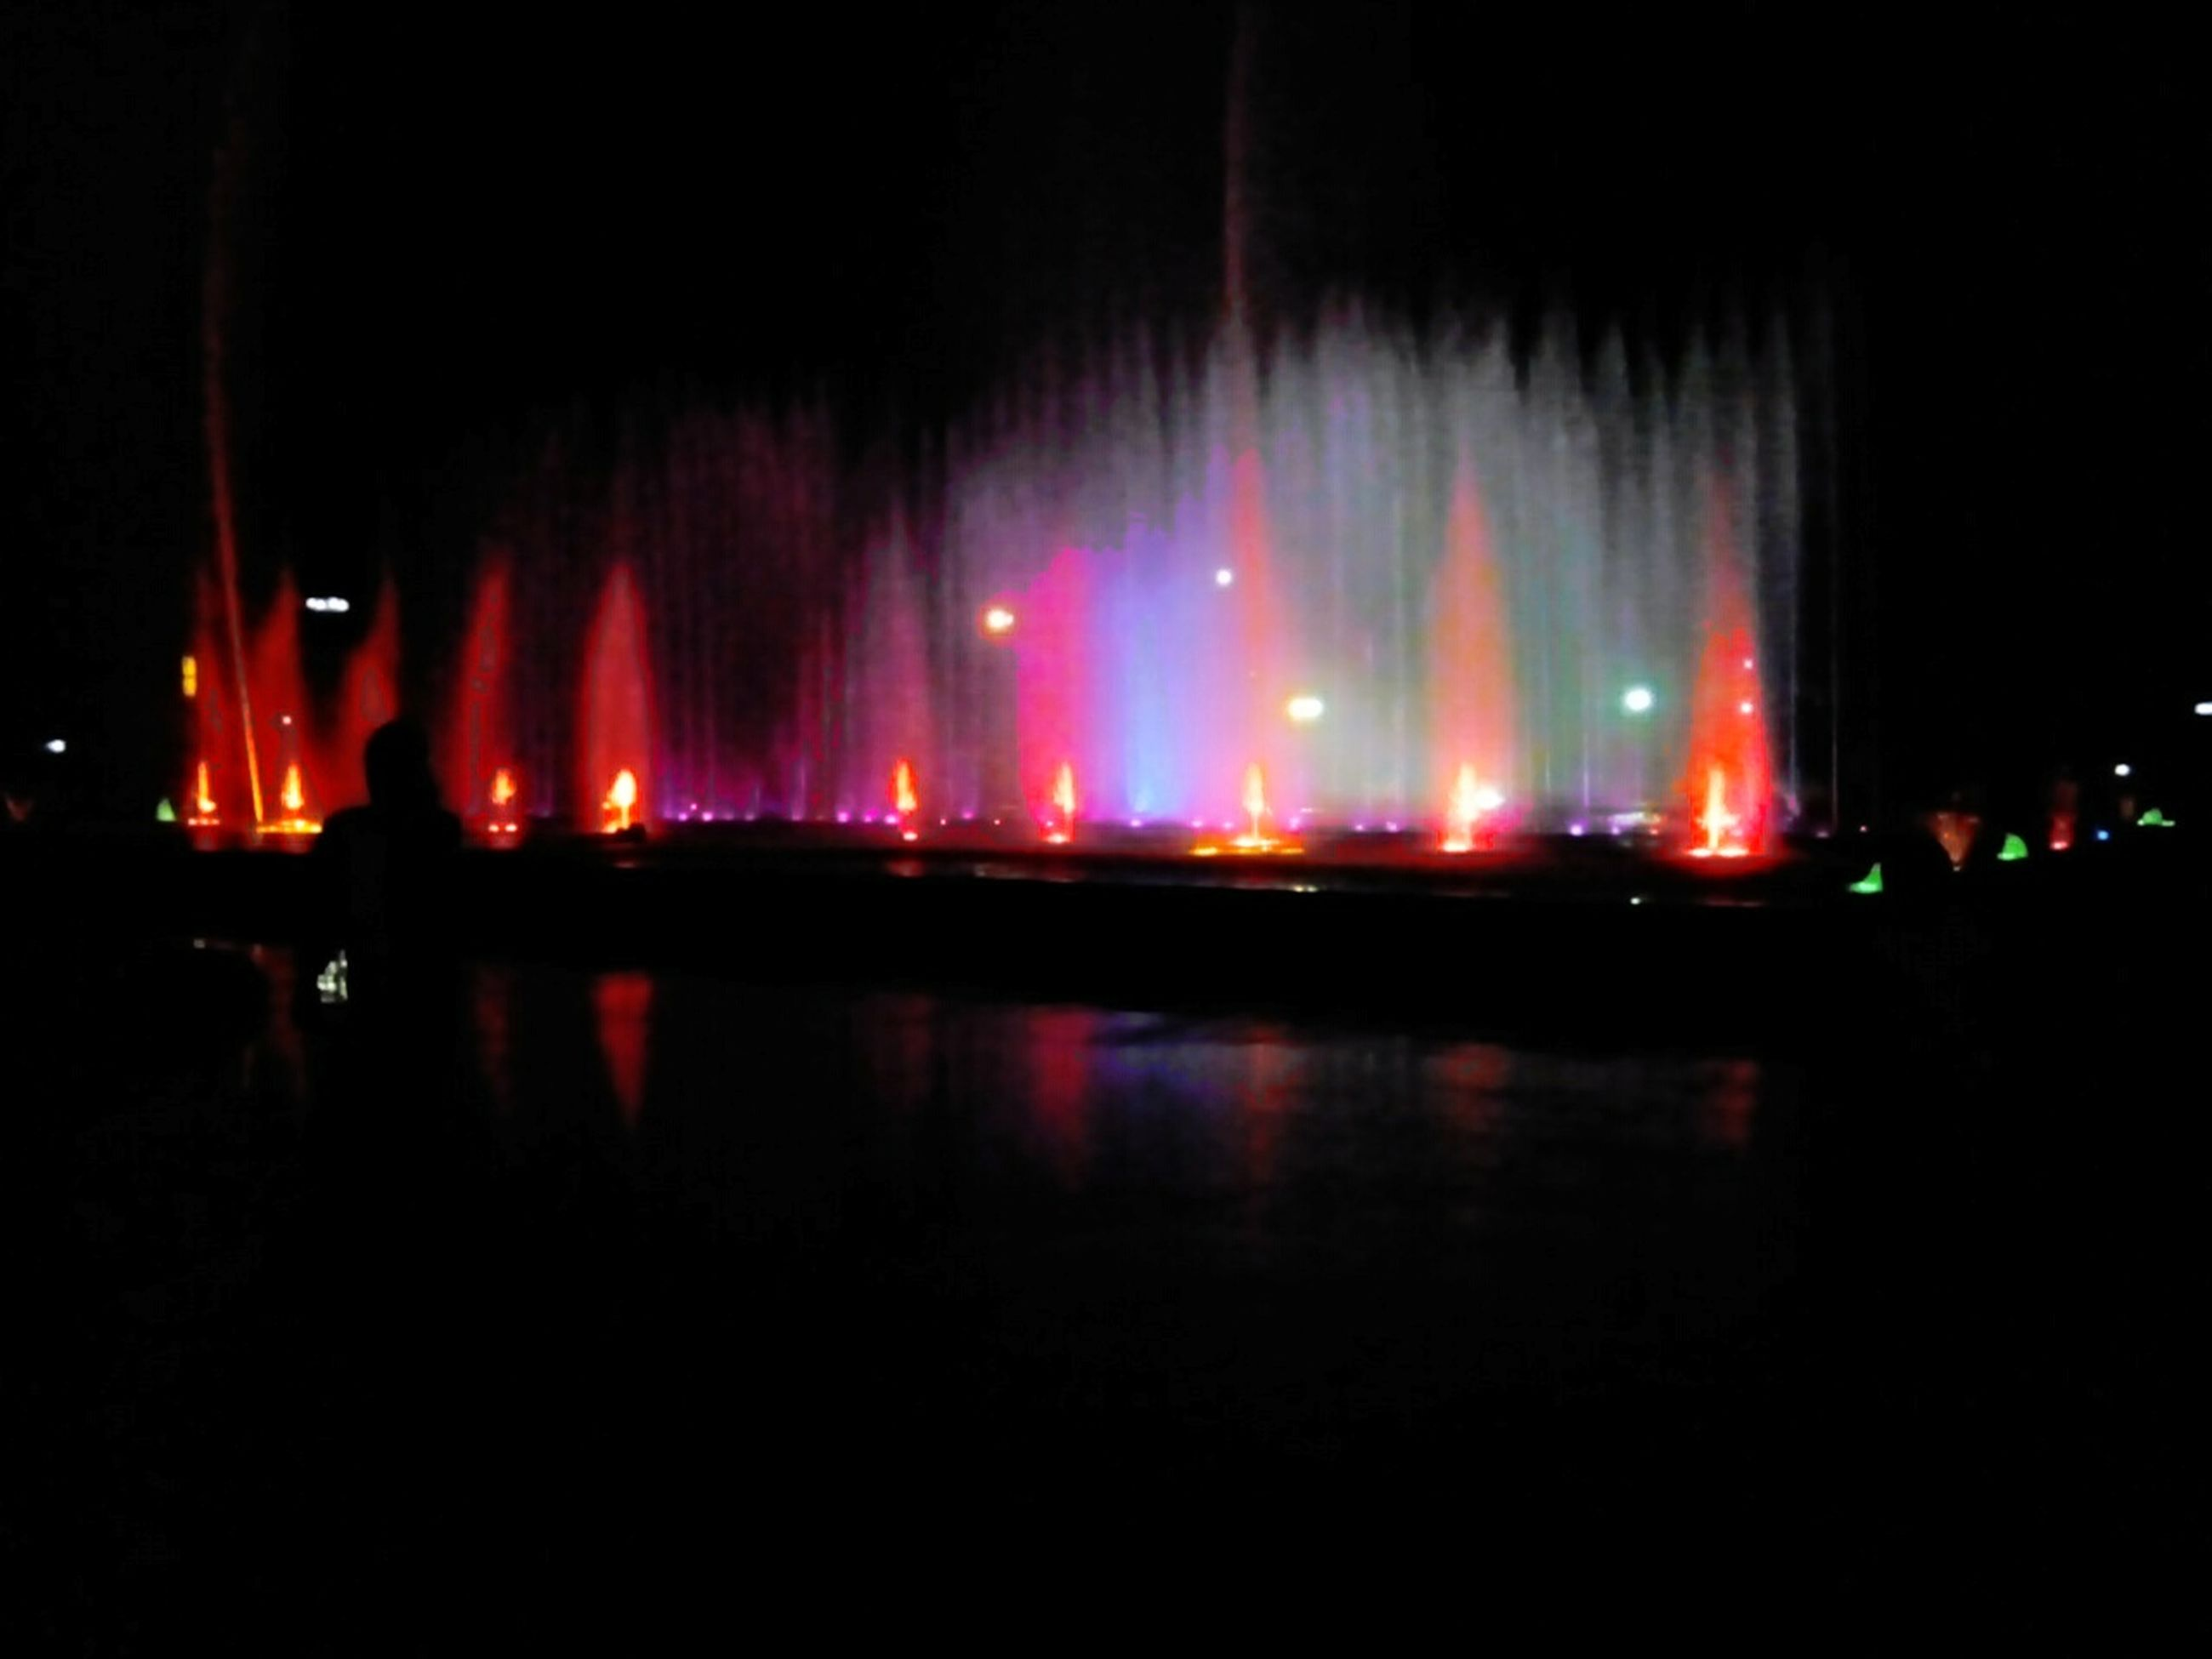 illuminated, night, reflection, indoors, water, lighting equipment, long exposure, motion, arts culture and entertainment, glowing, blurred motion, light - natural phenomenon, multi colored, in a row, dark, incidental people, waterfront, large group of people, light, copy space